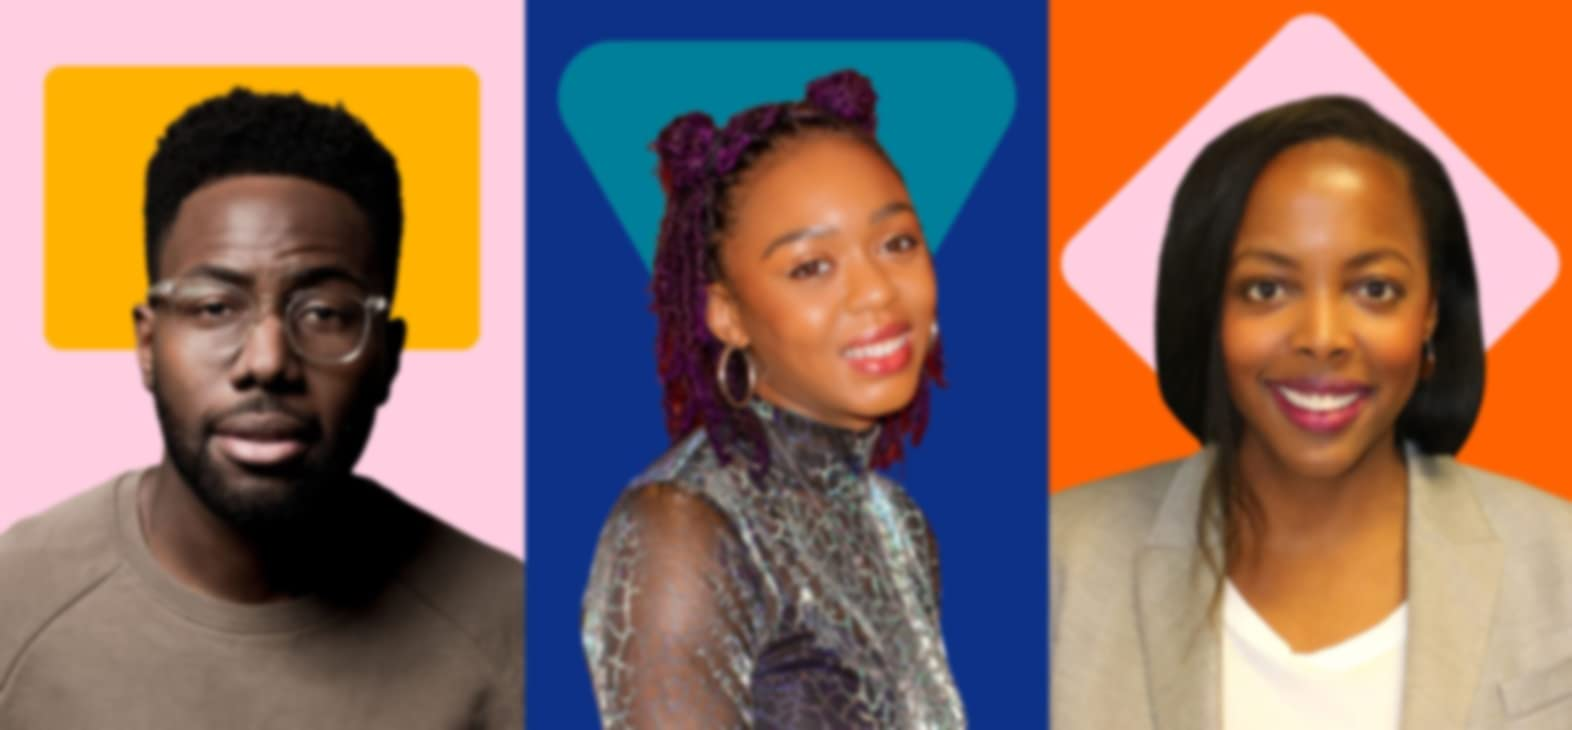 Daniel Lawrence Taylor — Timewasters, Romarna Campbell — the Romarna Campbell Trio, and Lauren Anderson — Co-Head of IMDb TV Content and Programming  respectively